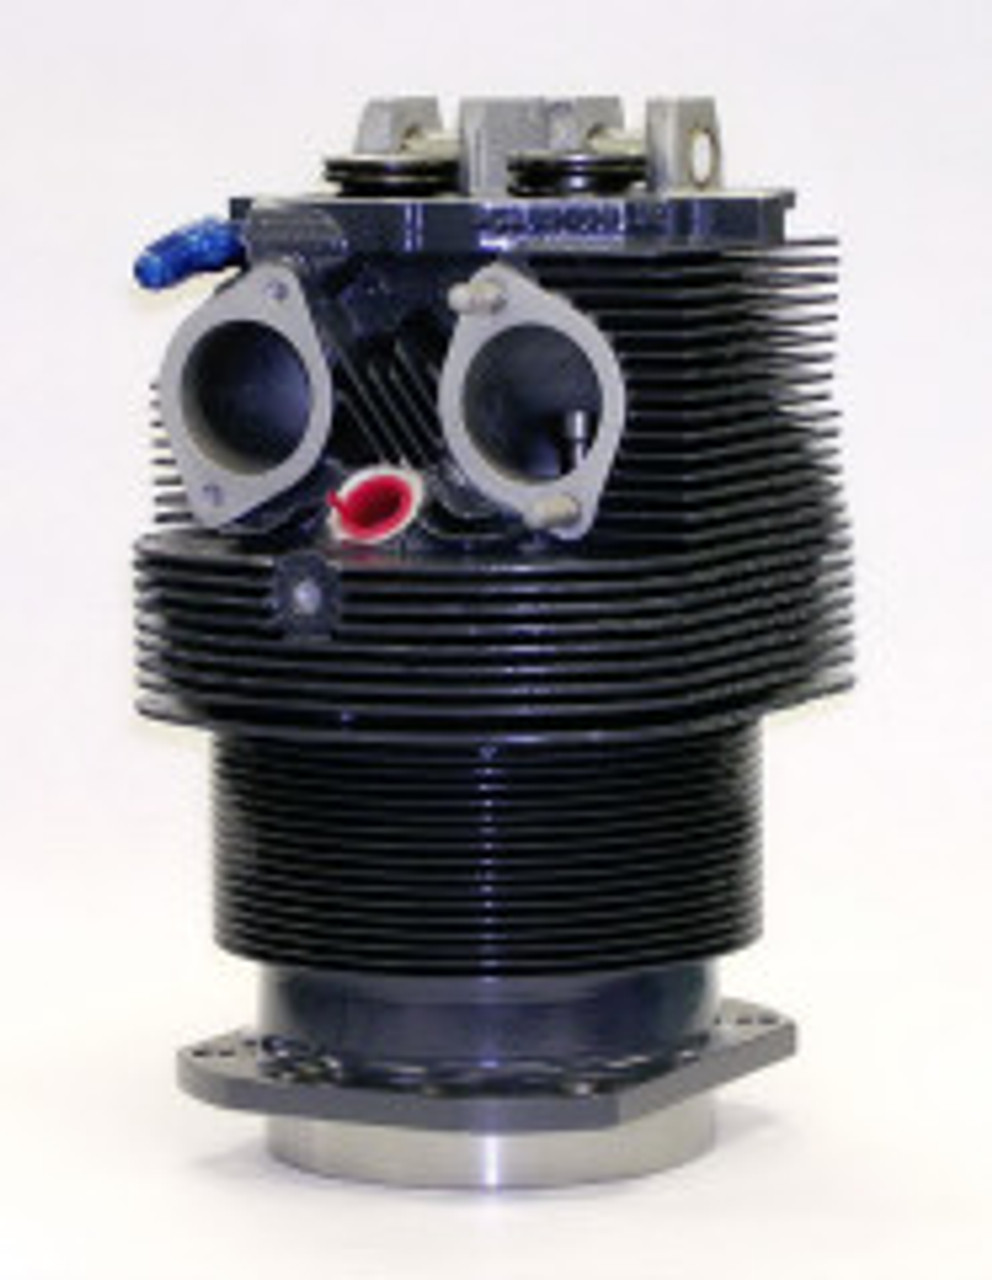 TITAN Cylinder, Lycoming O-360/O-540 Series Engines, Complete Assembly,  Steel Bore, Class 10 1 - TIST10 1CA